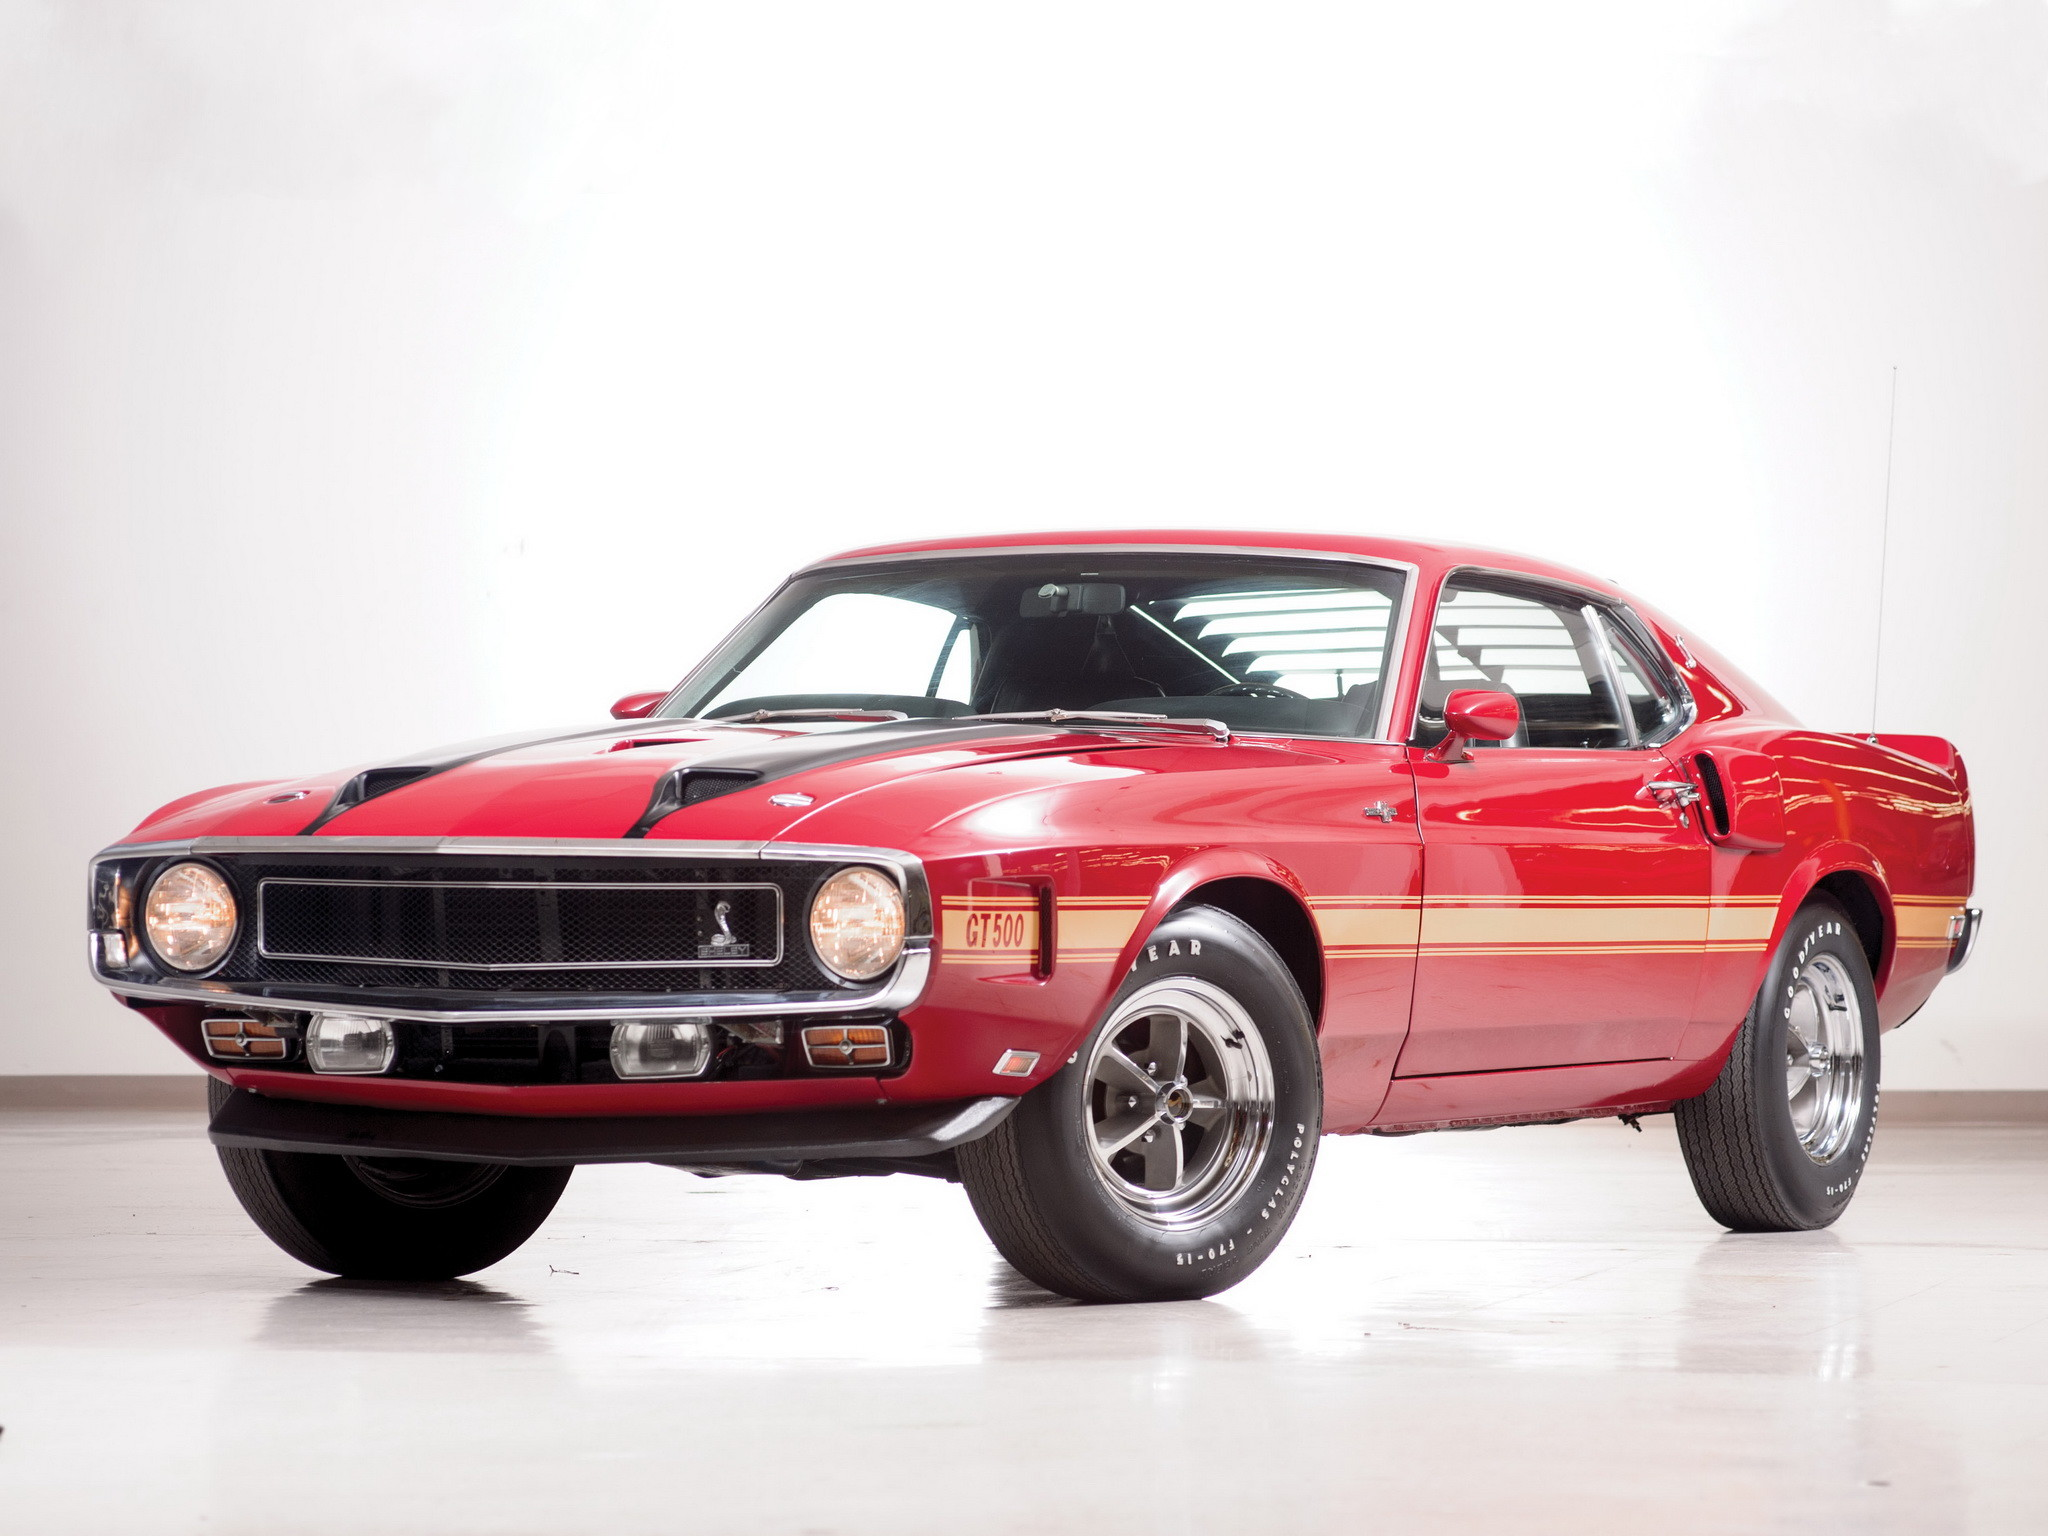 1969 Shelby GT500 ford mustang classic muscle b wallpaper .